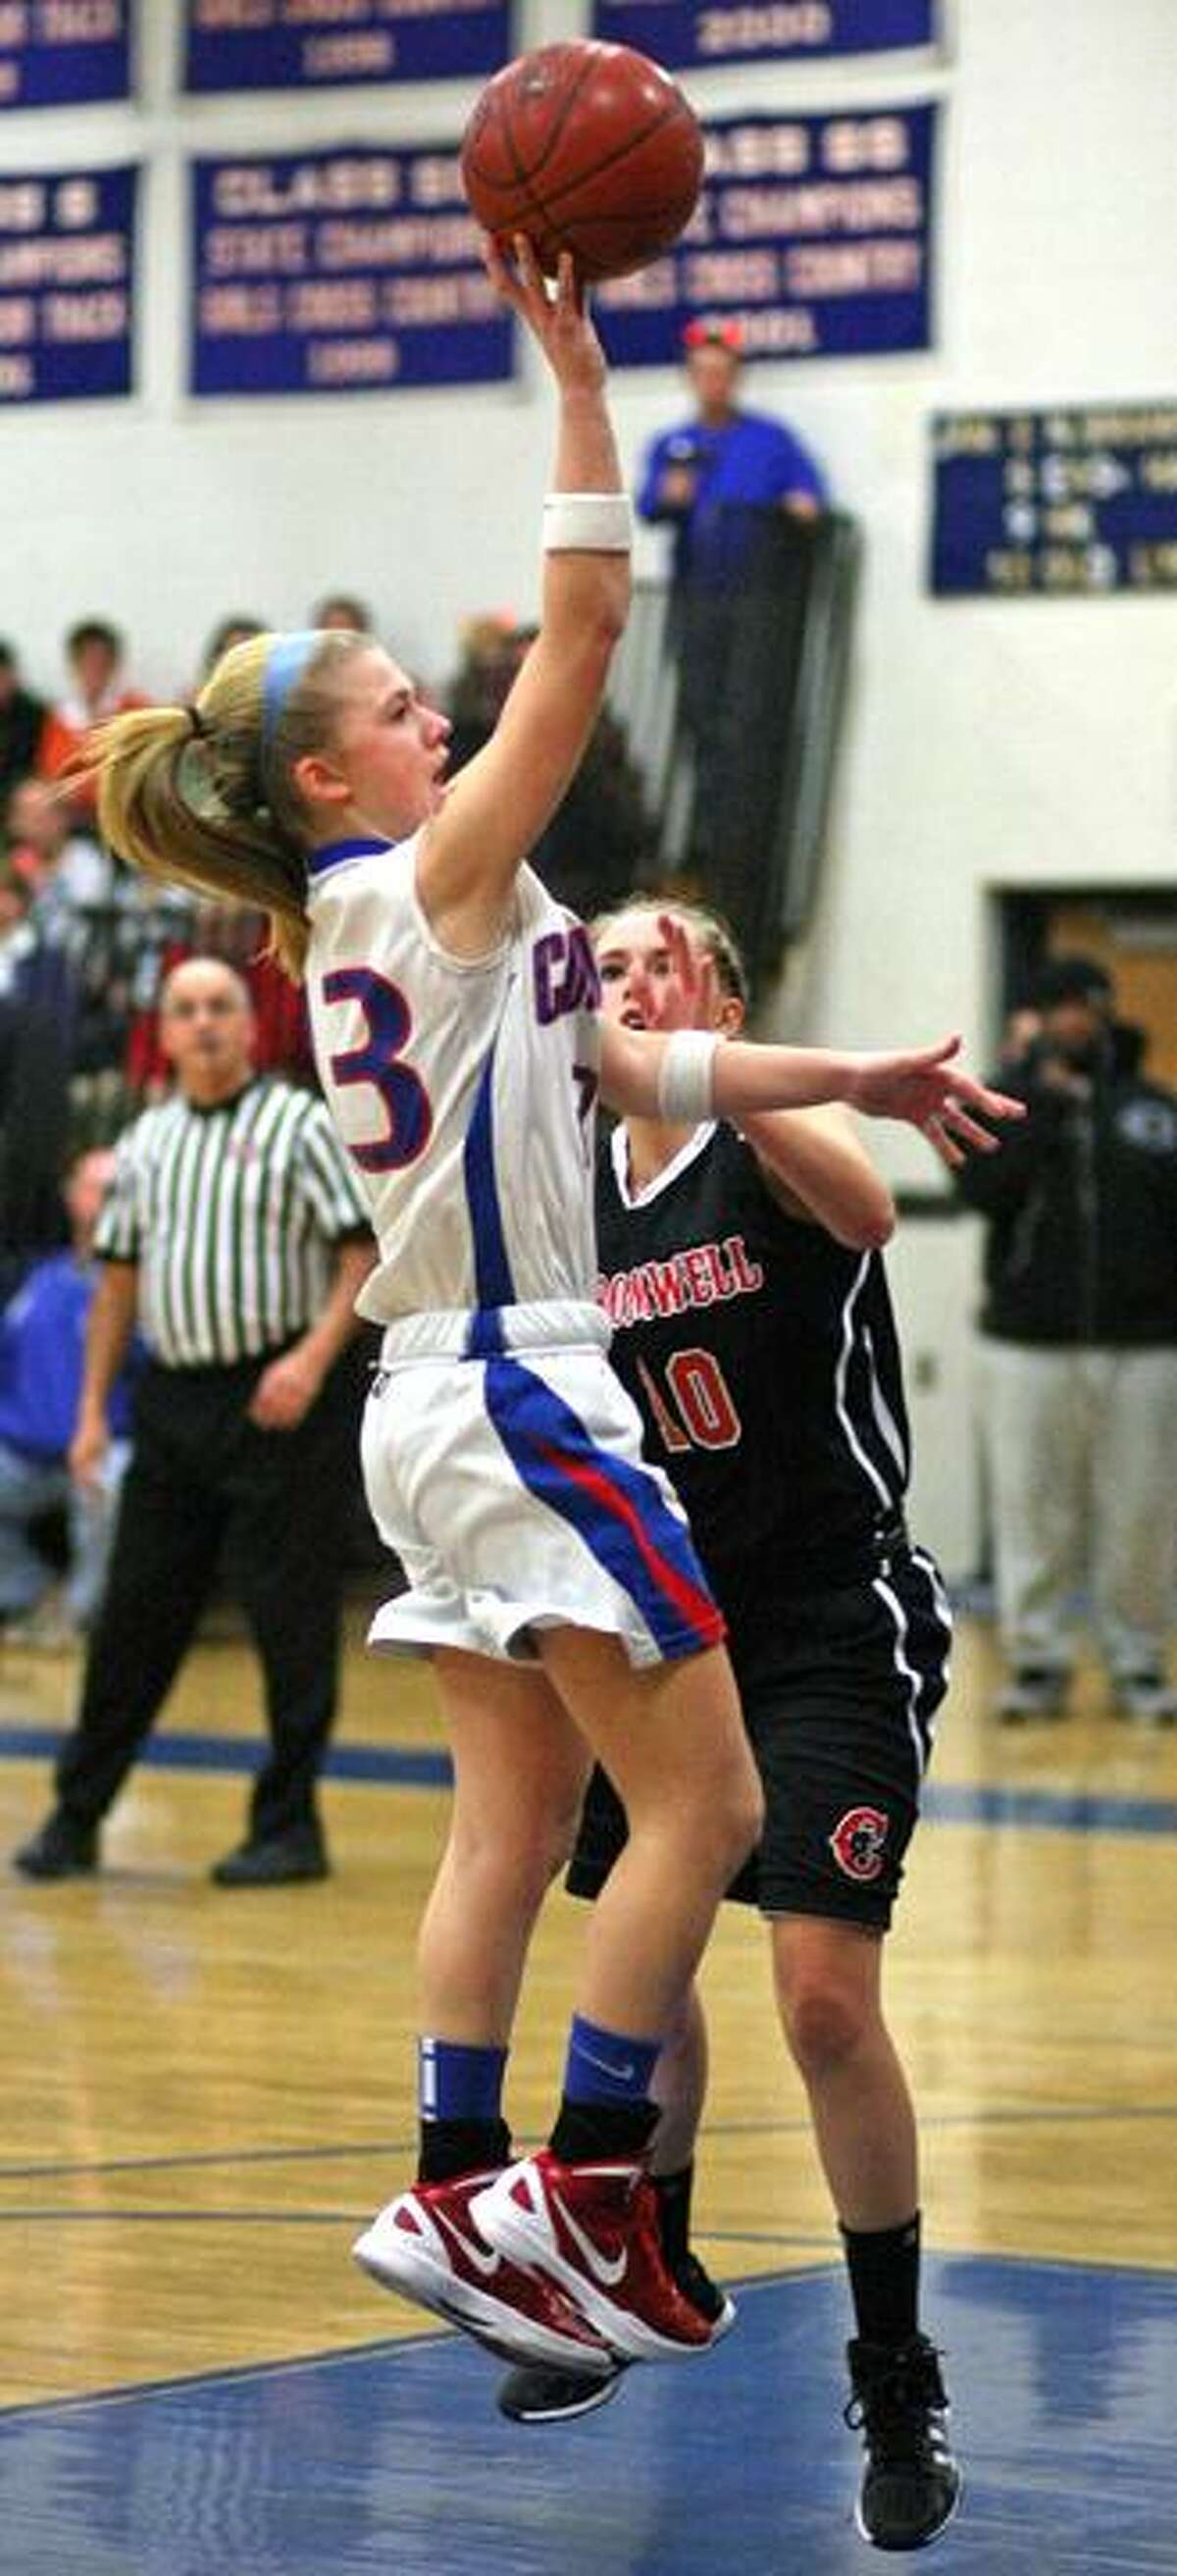 Special to the Press 01.13.12 Cromwell's Lindsay Langenauer battles Coginchaug's Morgan Kuehnle in Friday's basketball game. Coginchaug won. To buy a glossy print of this photo and more, visit www.middletownpress.com.